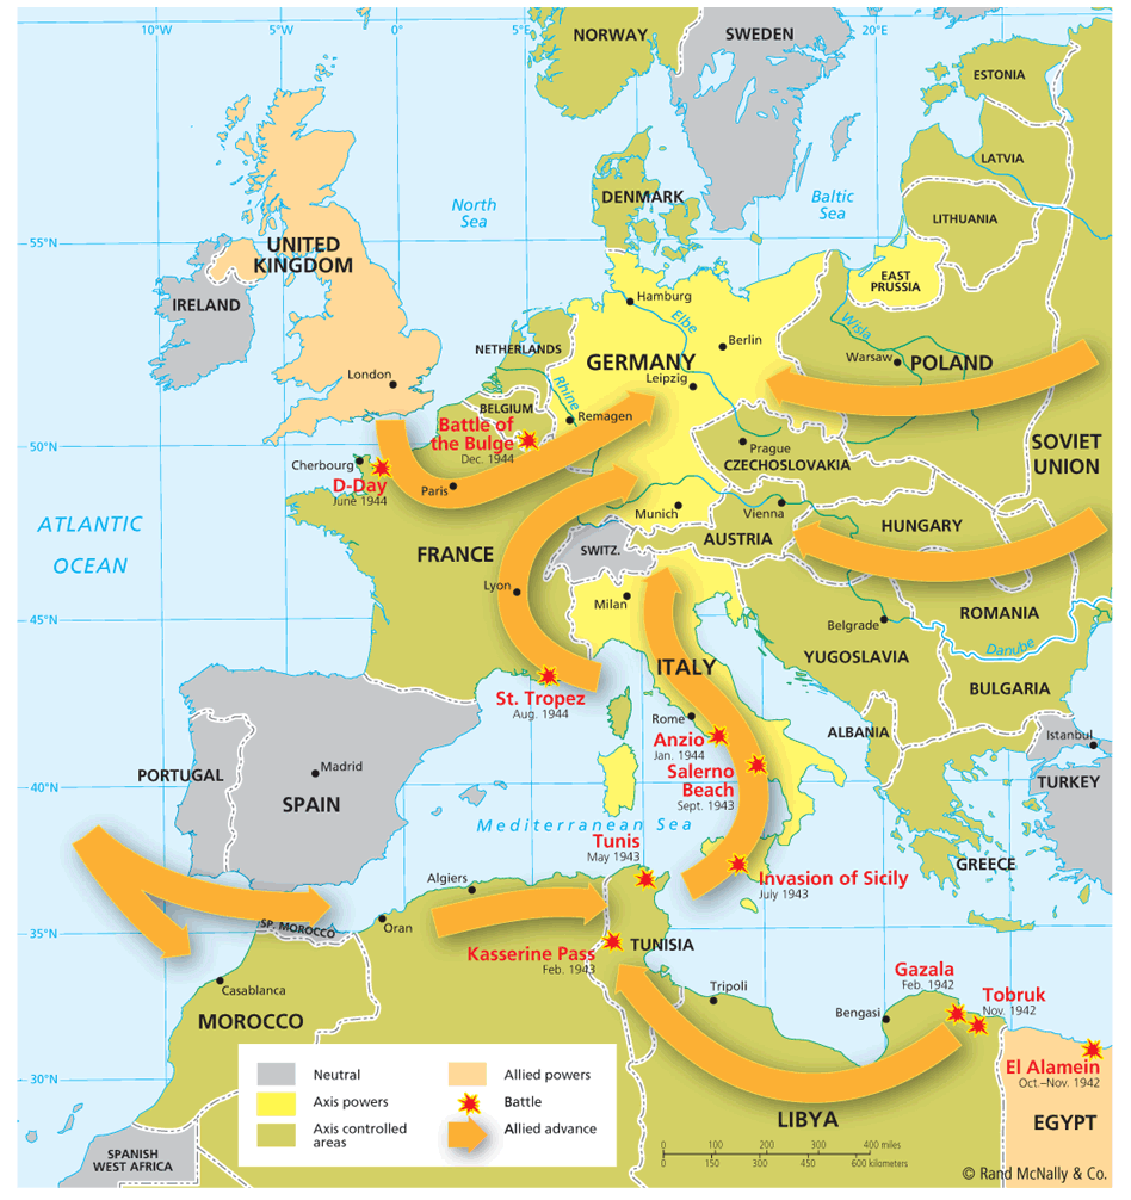 World war ii 1941 1945 european theater wwii maps pinterest extra map of the european theater world war ii the arrows indicate the allied advances sciox Images